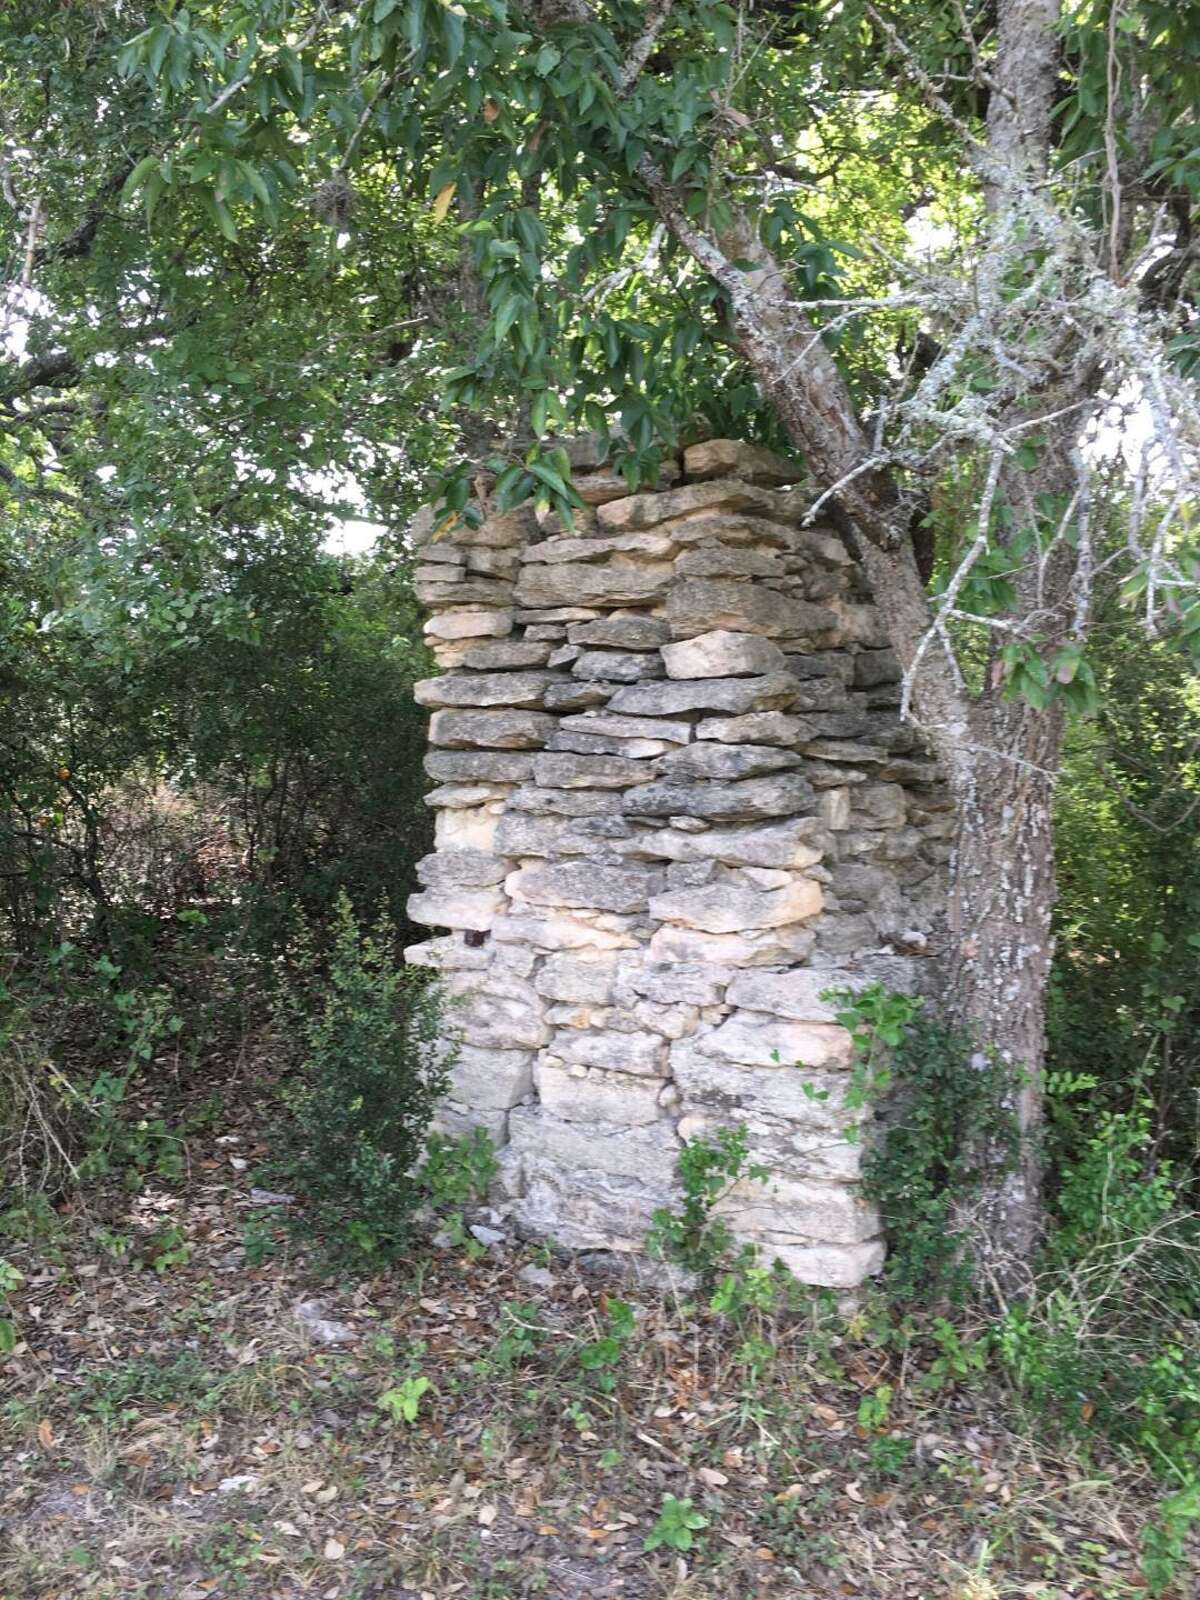 The remains of a stone chimney still standing near the Padilla-Zimmerle family cemetery at the Redbird Ranch subdivision appears to have been part of a now-missing structure, probably a wood homestead belonging to the family.